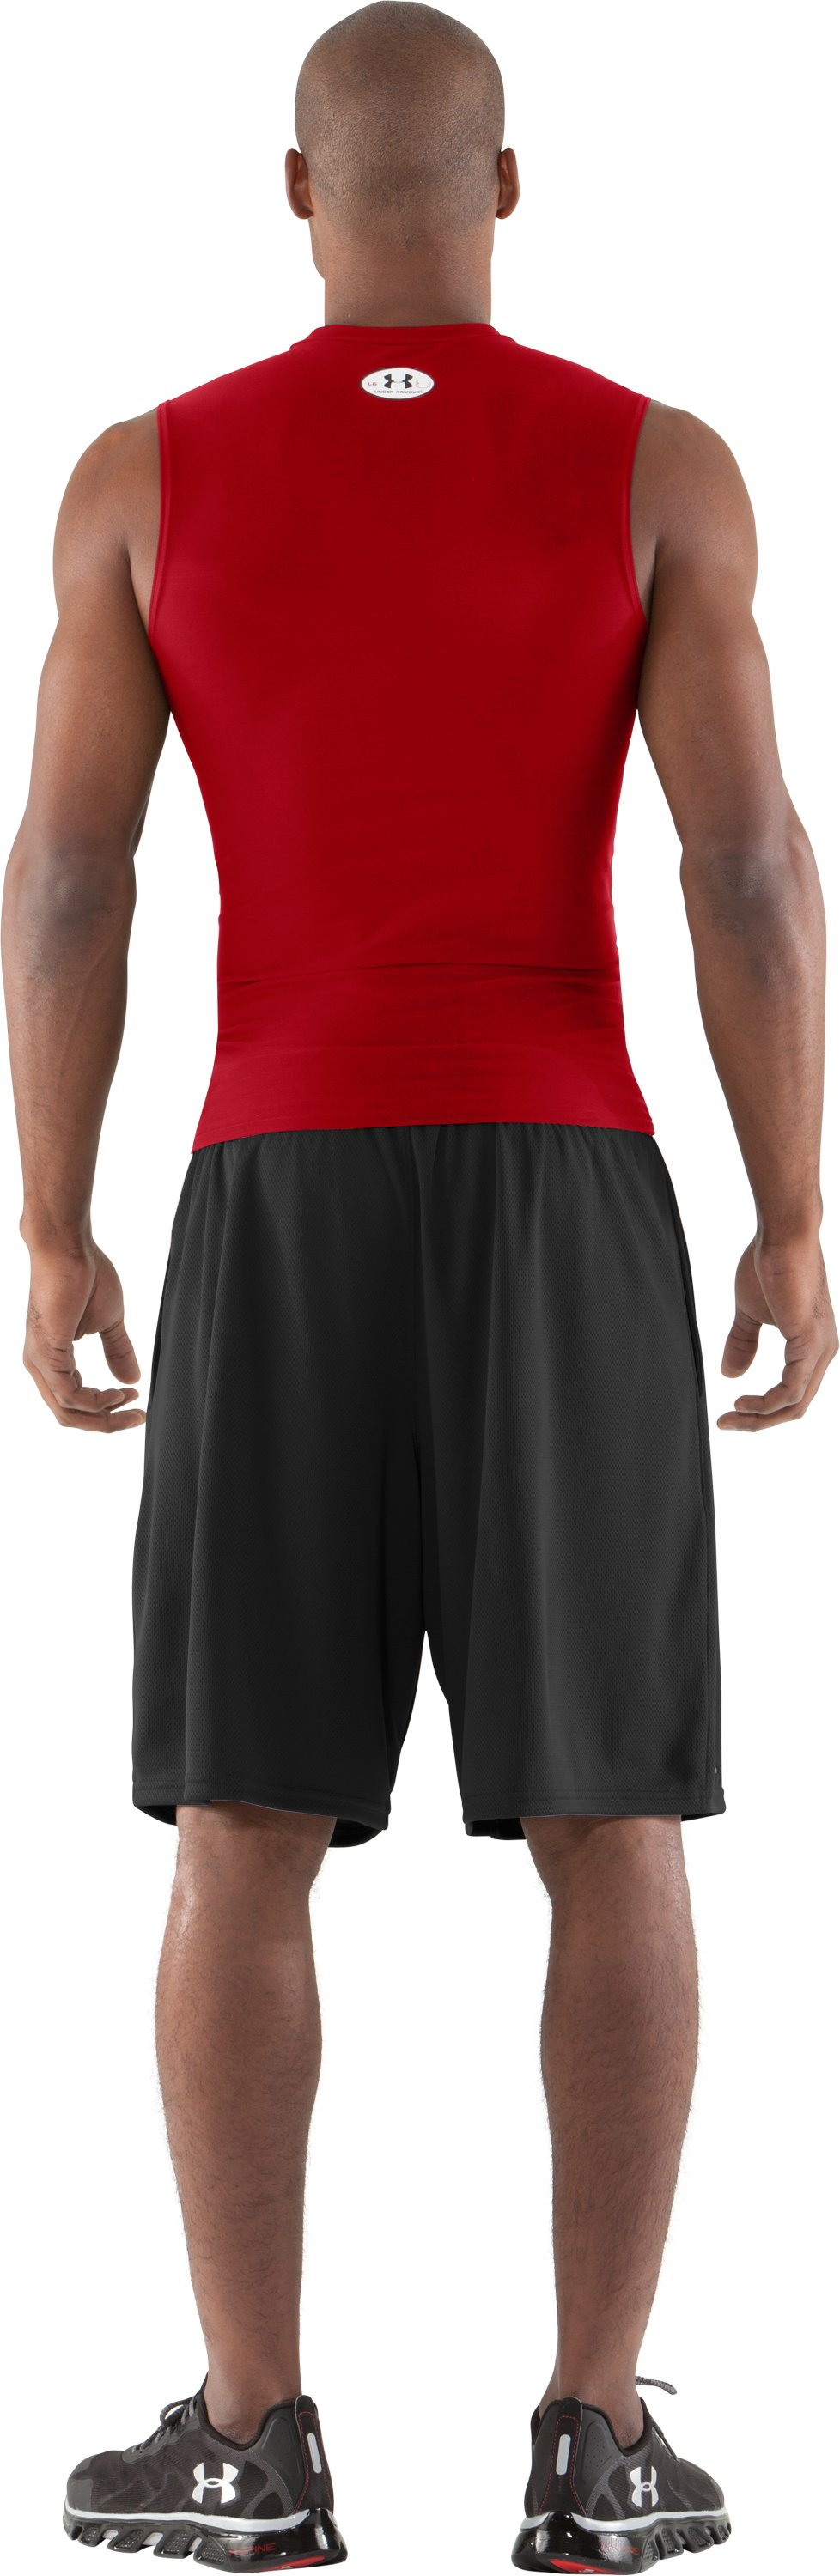 Men's HeatGear® Compression Sleeveless T-Shirt, Red, Back